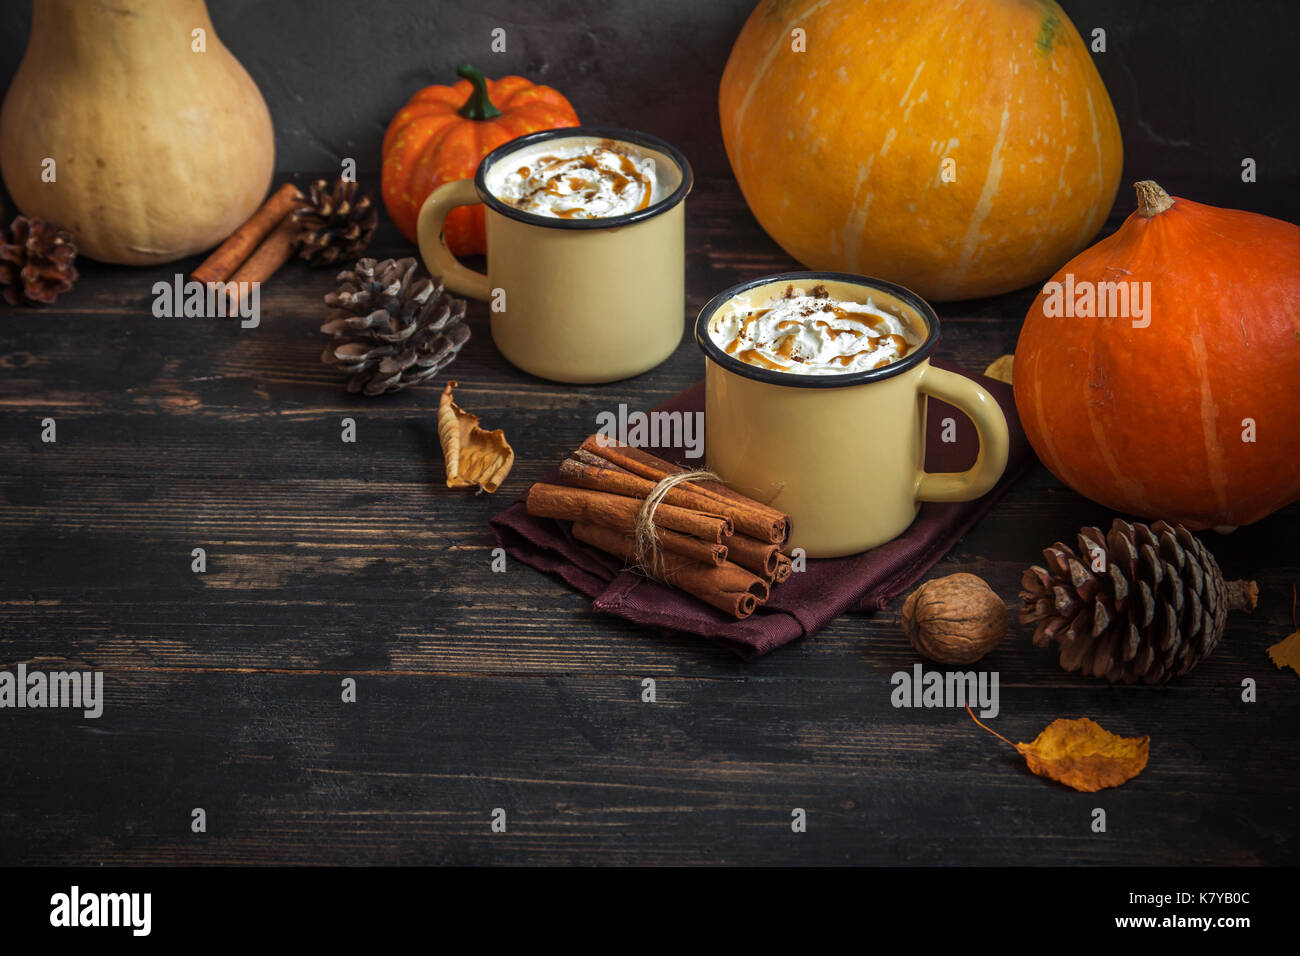 Hot Chocolate with Pumpkin Pie Spices over dark wooden background with copy space. Autumn still life. Thaksgiving and Autumn concept. - Stock Image